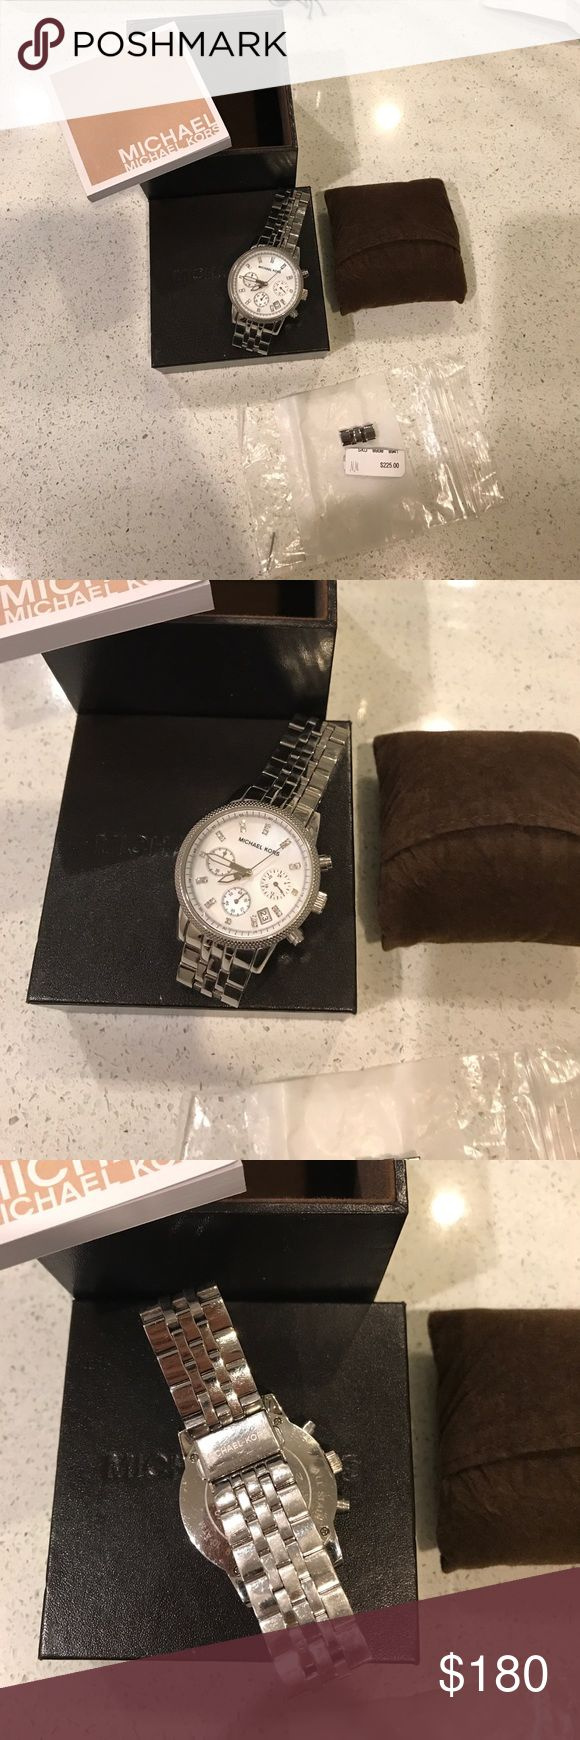 Michael Kors mother of pearl silver watch Michael Kors mother of pearl watch has been worn several times was bought at Neiman Marcus!!! Michael Kors Accessories Watches